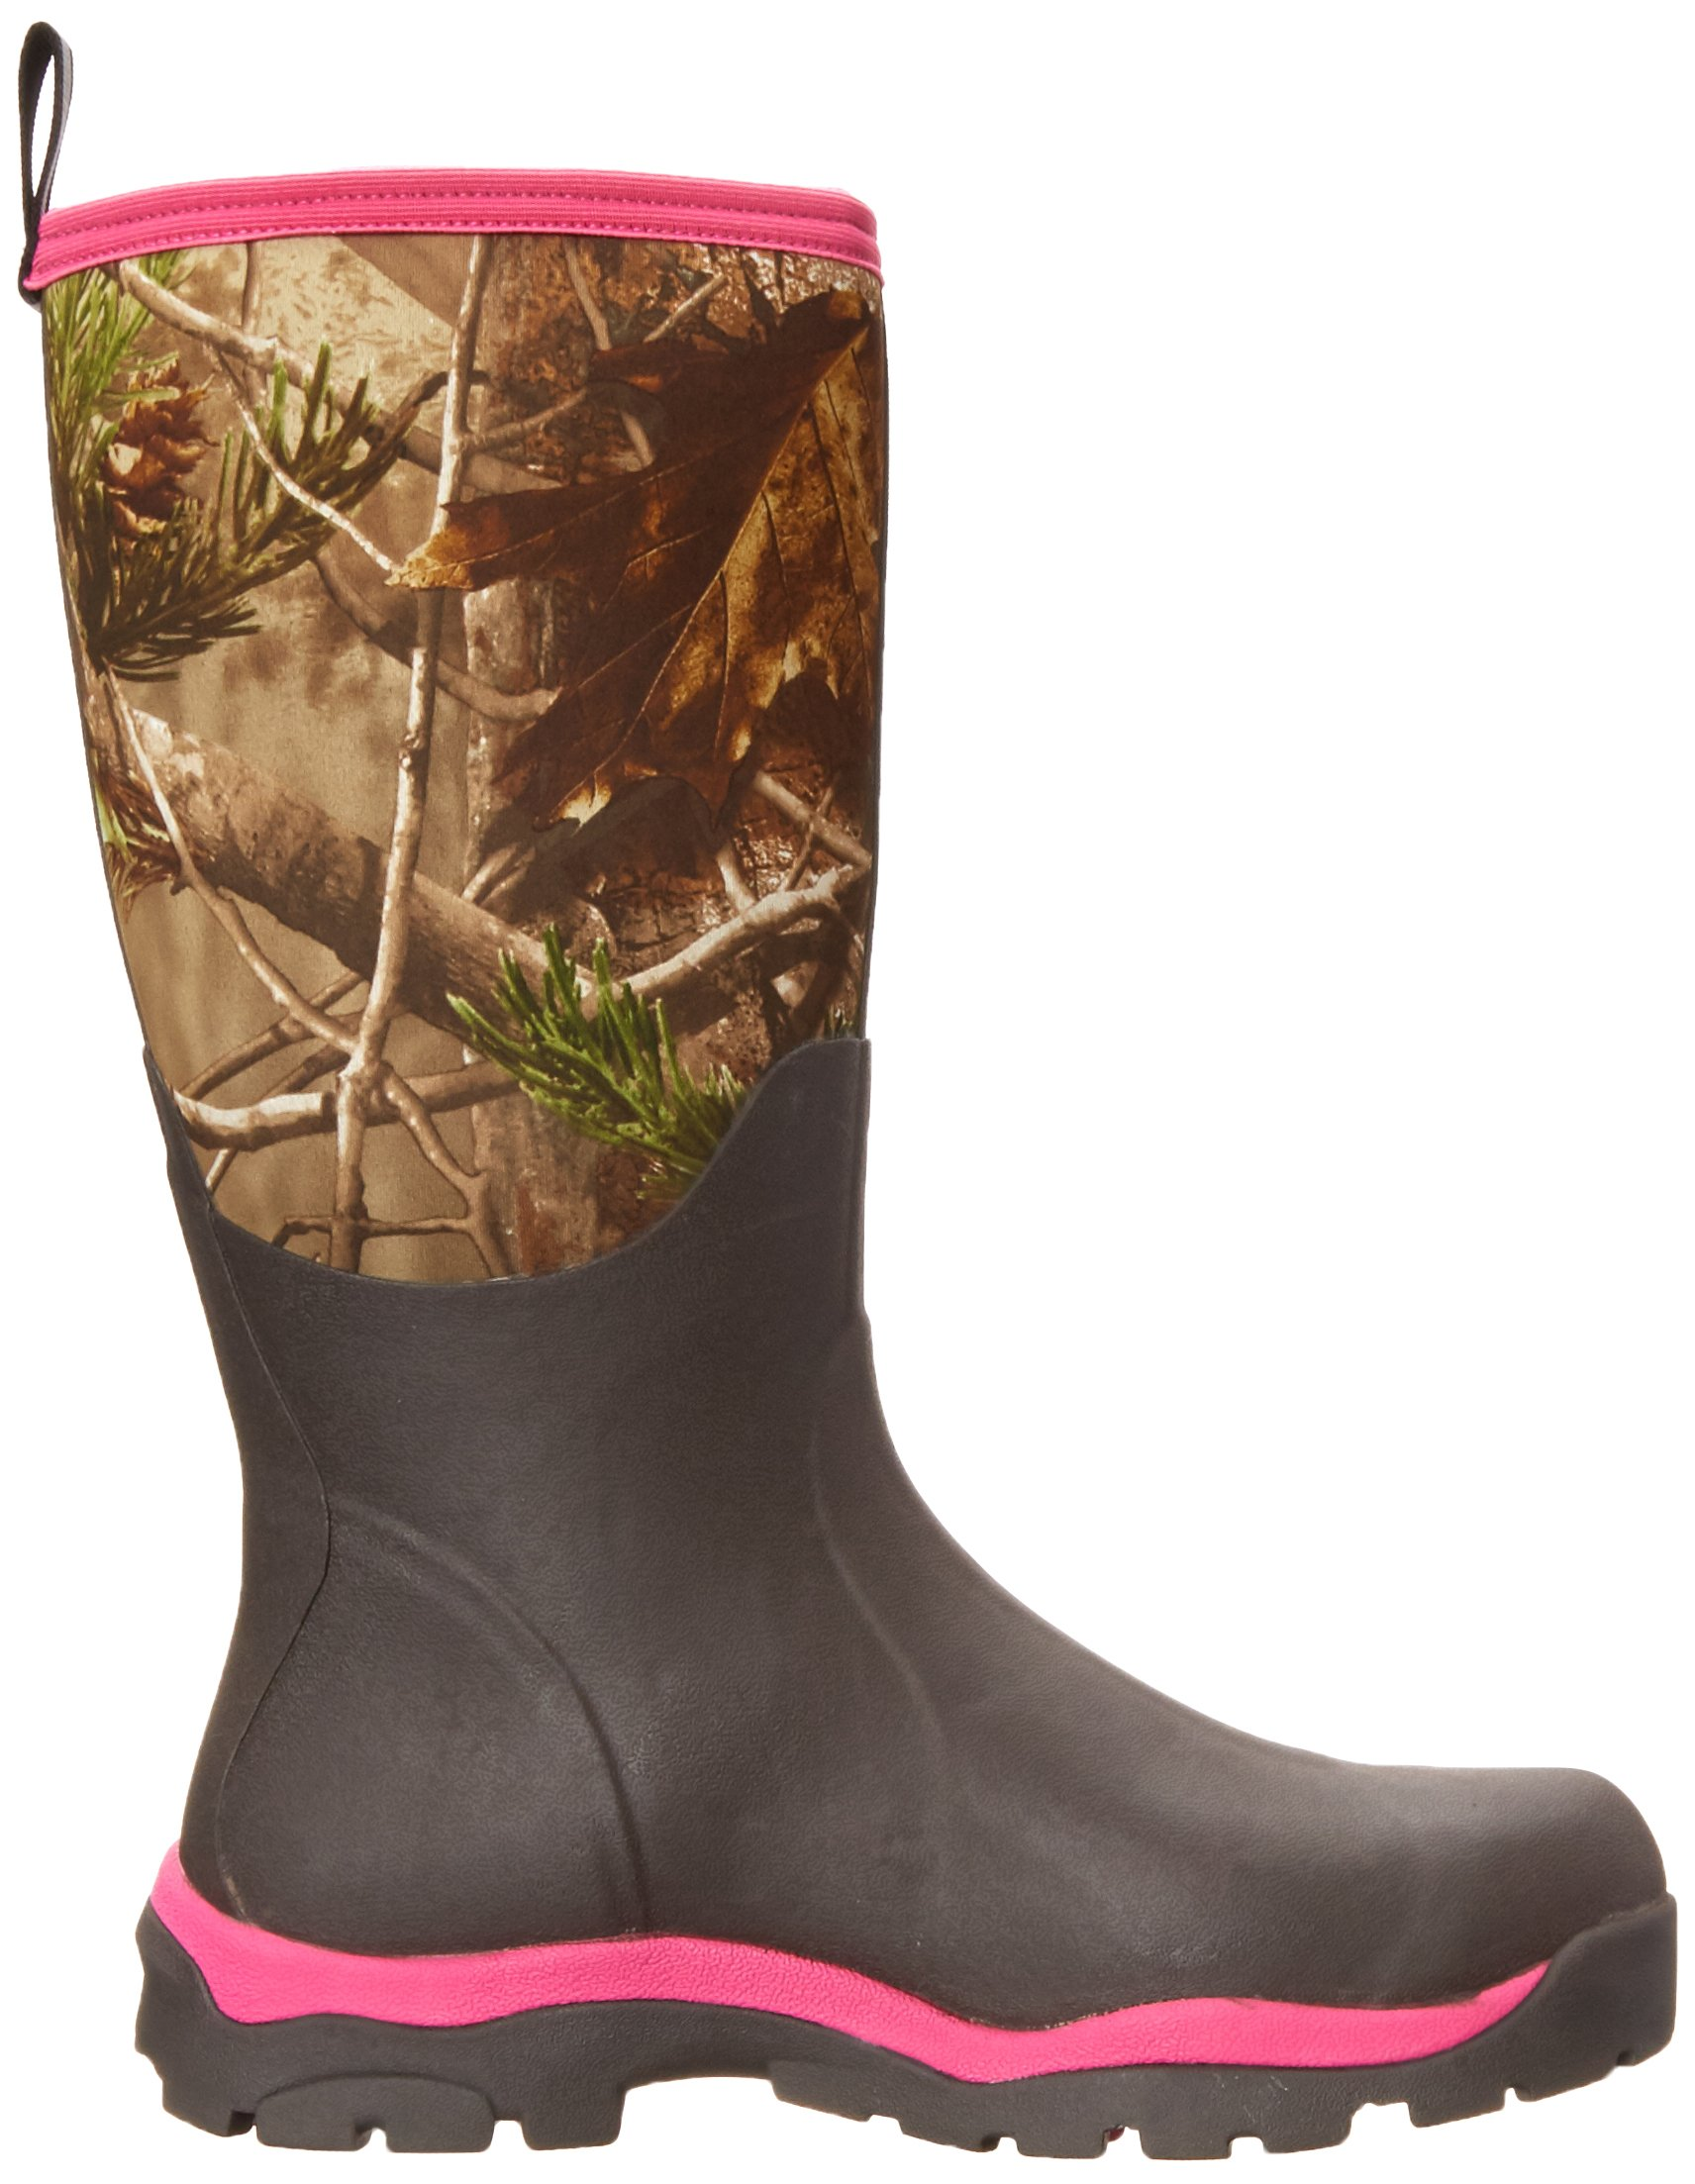 Muck Boot Womens Woody Pk Hunting Shoes, Bark/Realtree/Hot Pink, 8 US/8-8.5 M US by Muck Boot (Image #7)